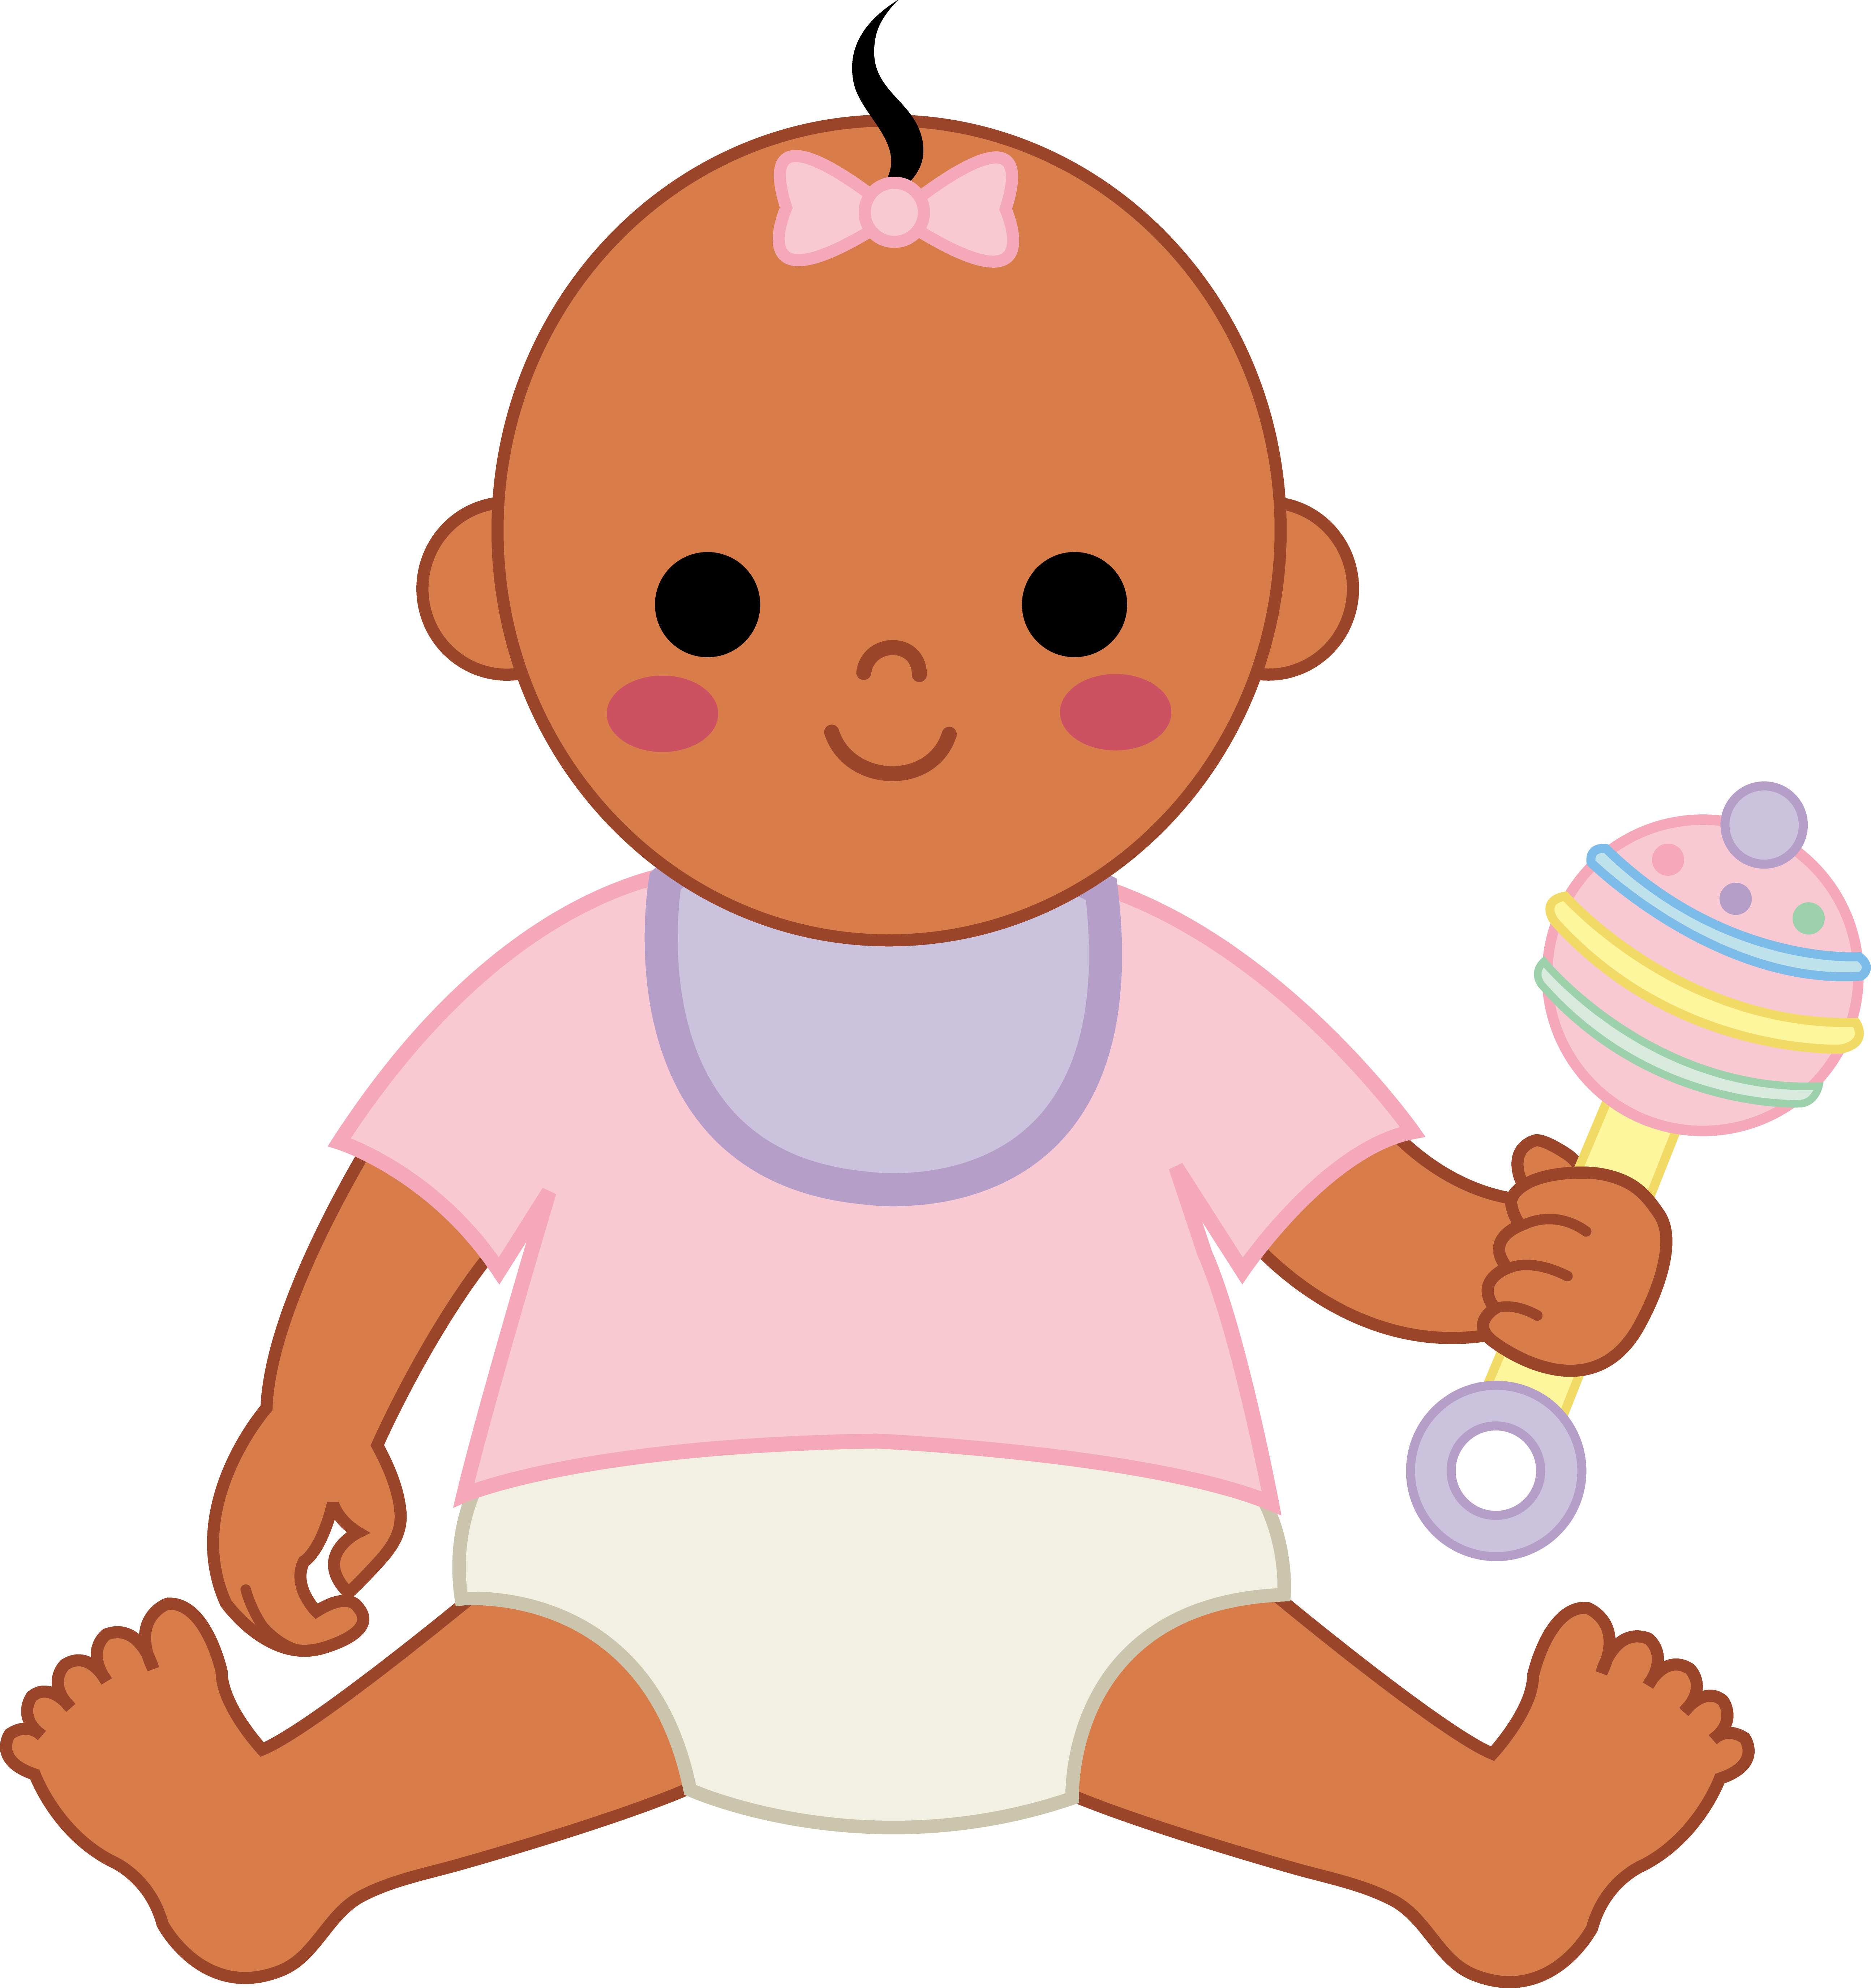 Baby clipart animated Animated clipart baby dress collection